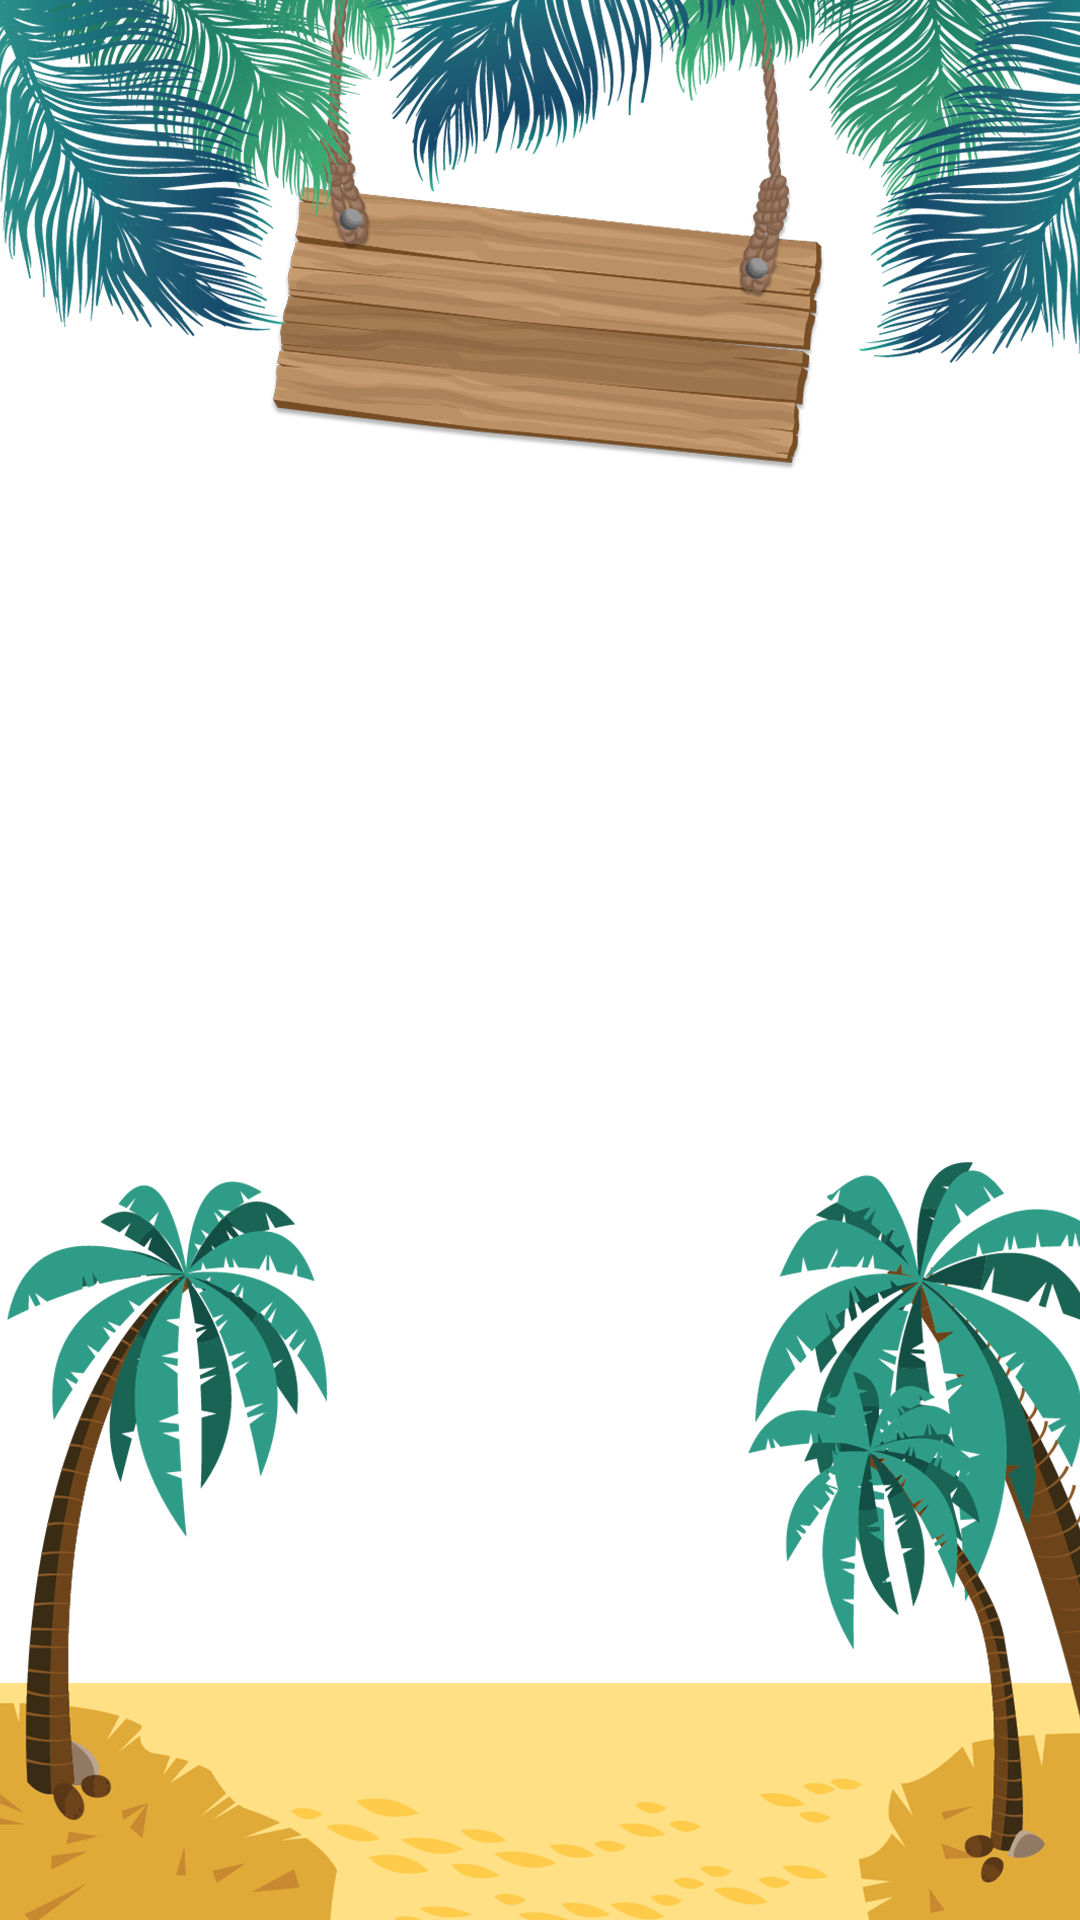 Clipart beach outing. Vacation birthday snapchat filter